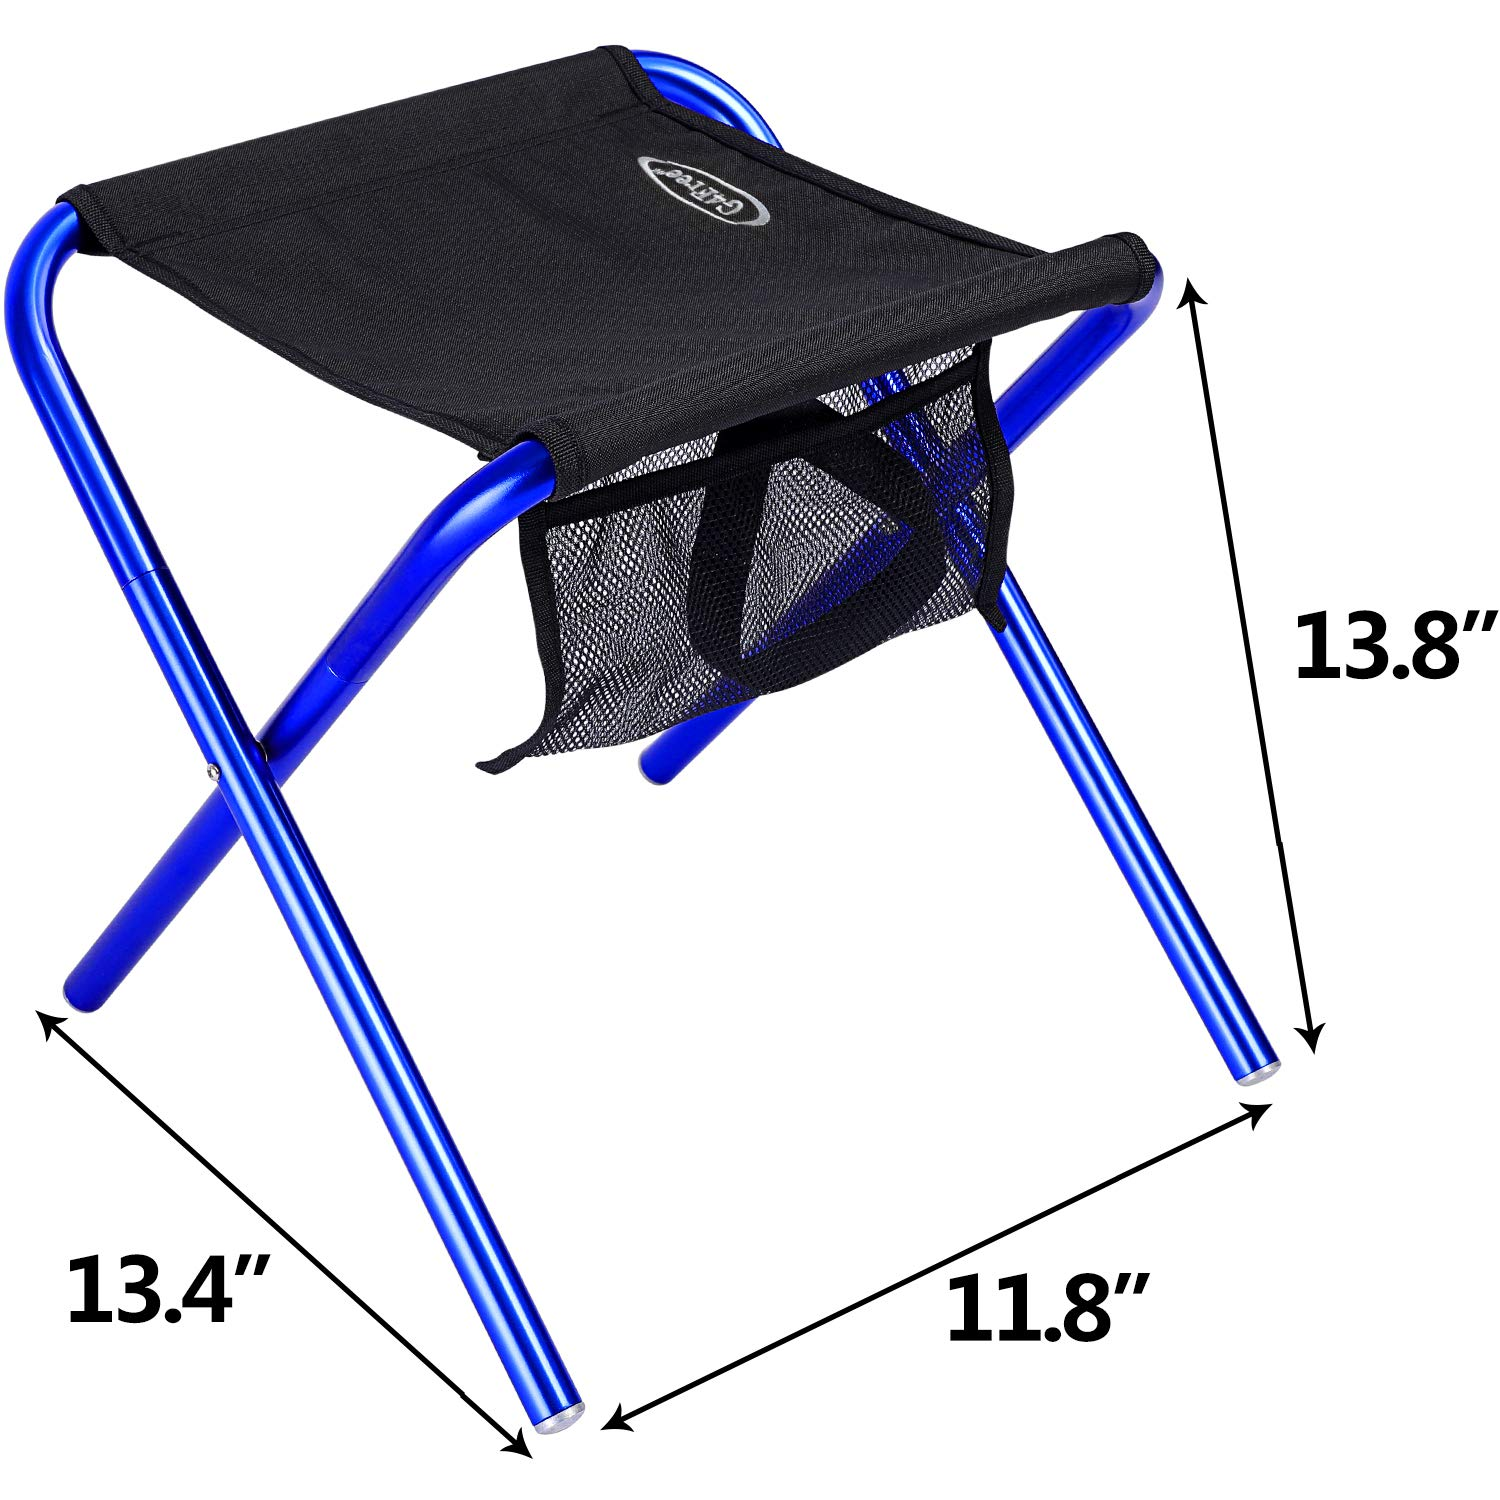 G4Free Folding Camping Stool with Mesh Storage Pouch (Large Size: 13.4''x11.8''x13.8''),Outdoor Slacker Chair for BBQ,Fishing,Travel,Hiking,Garden,Beach(Black+Blue)